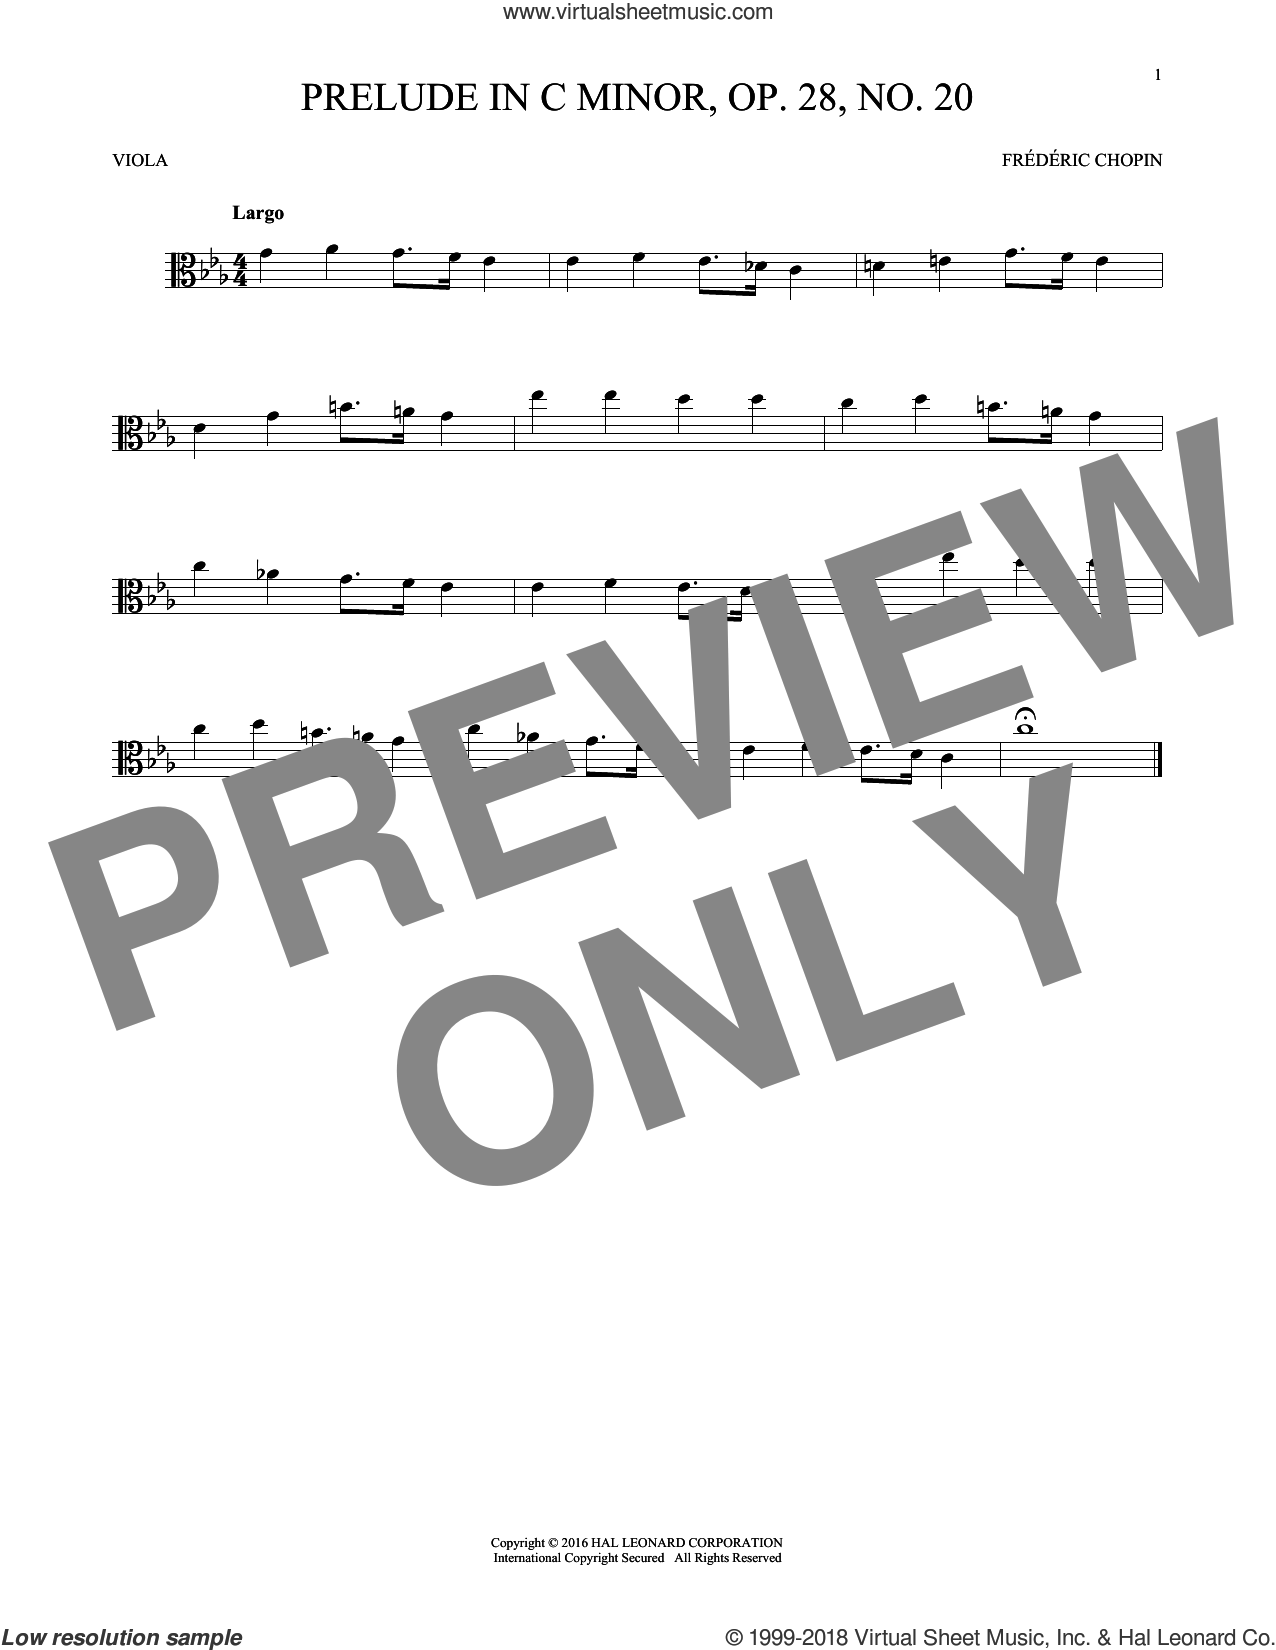 Prelude, Op. 28, No. 20 sheet music for viola solo by Frederic Chopin, classical score, intermediate skill level